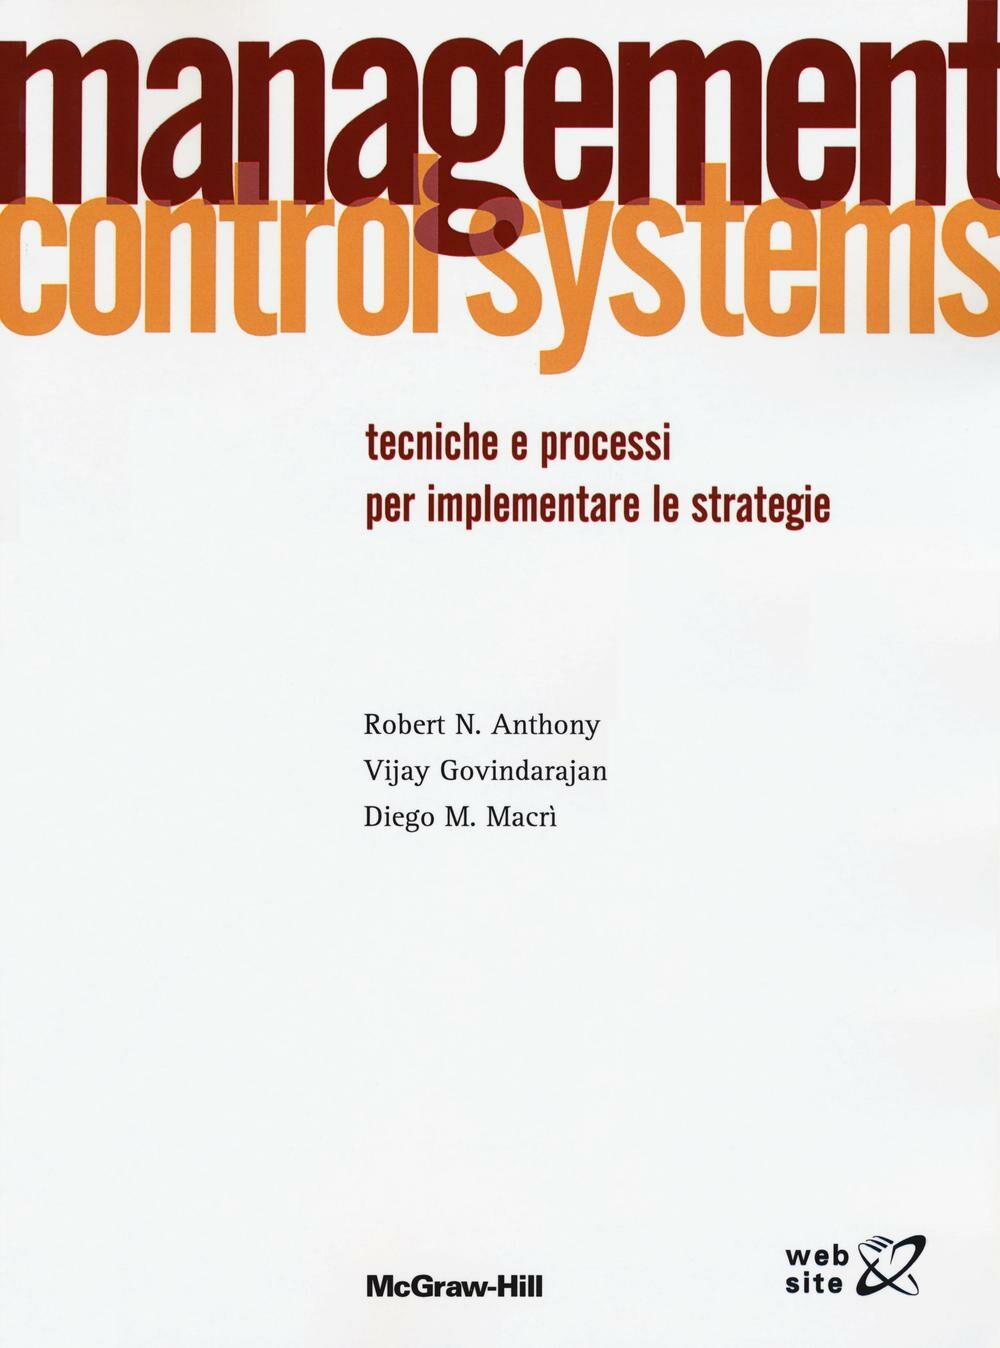 Management control systems. Tecniche e processi per implementare le strategie